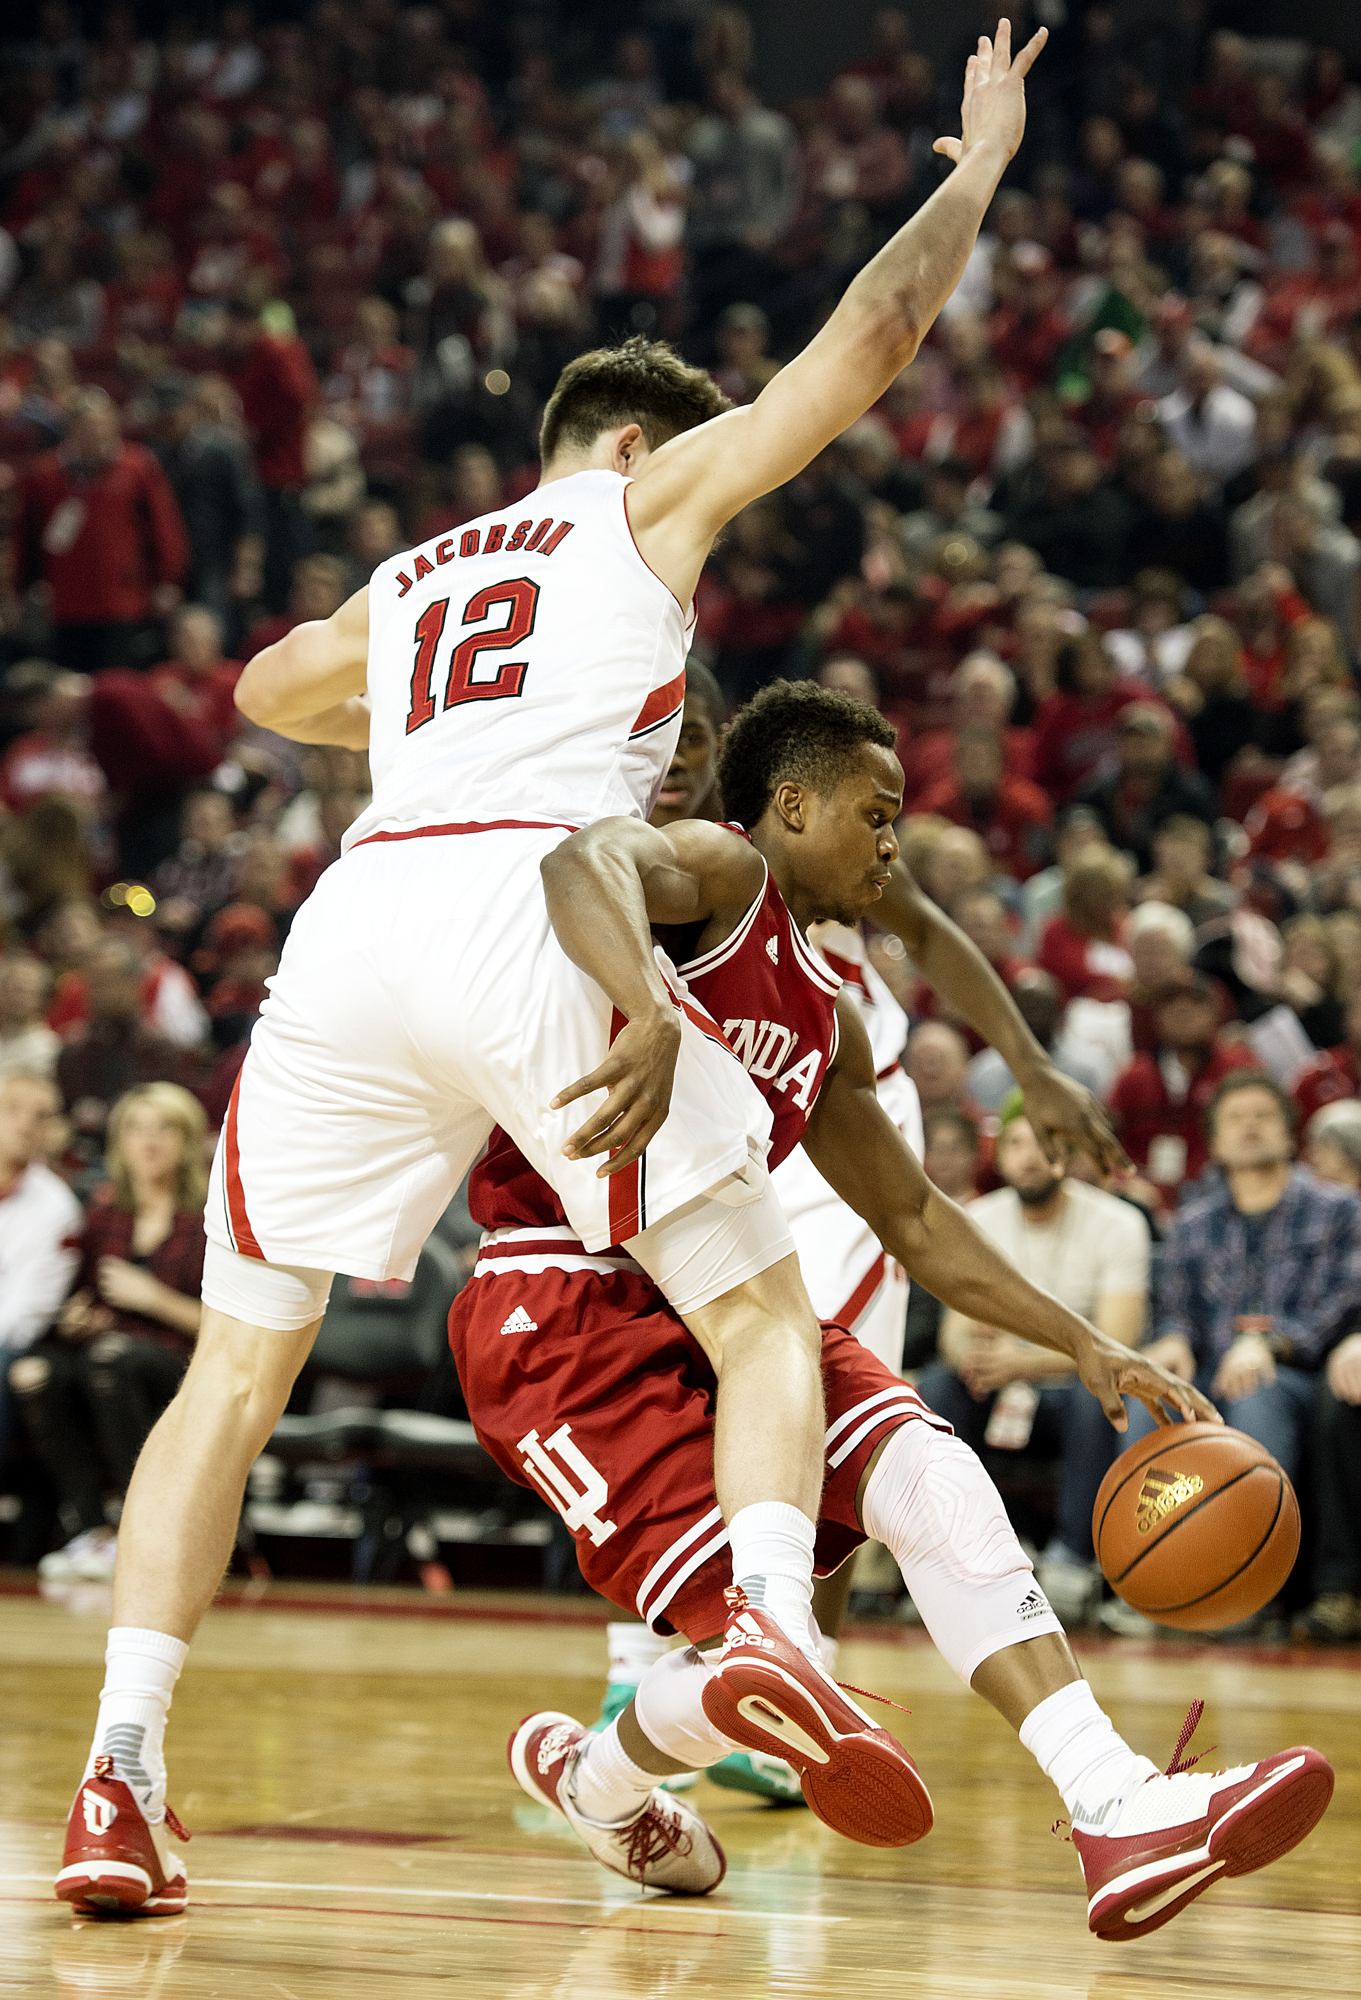 Indiana guard Yogi Ferrell (11) tries to drive under Nebraska forward Michael Jacobson (12) during the first half of an NCAA college basketball game, Saturday, Jan. 2, 2016, at Pinnacle Bank Arena in Lincoln, Neb. (Kristin Streff/The Journal-Star via AP)